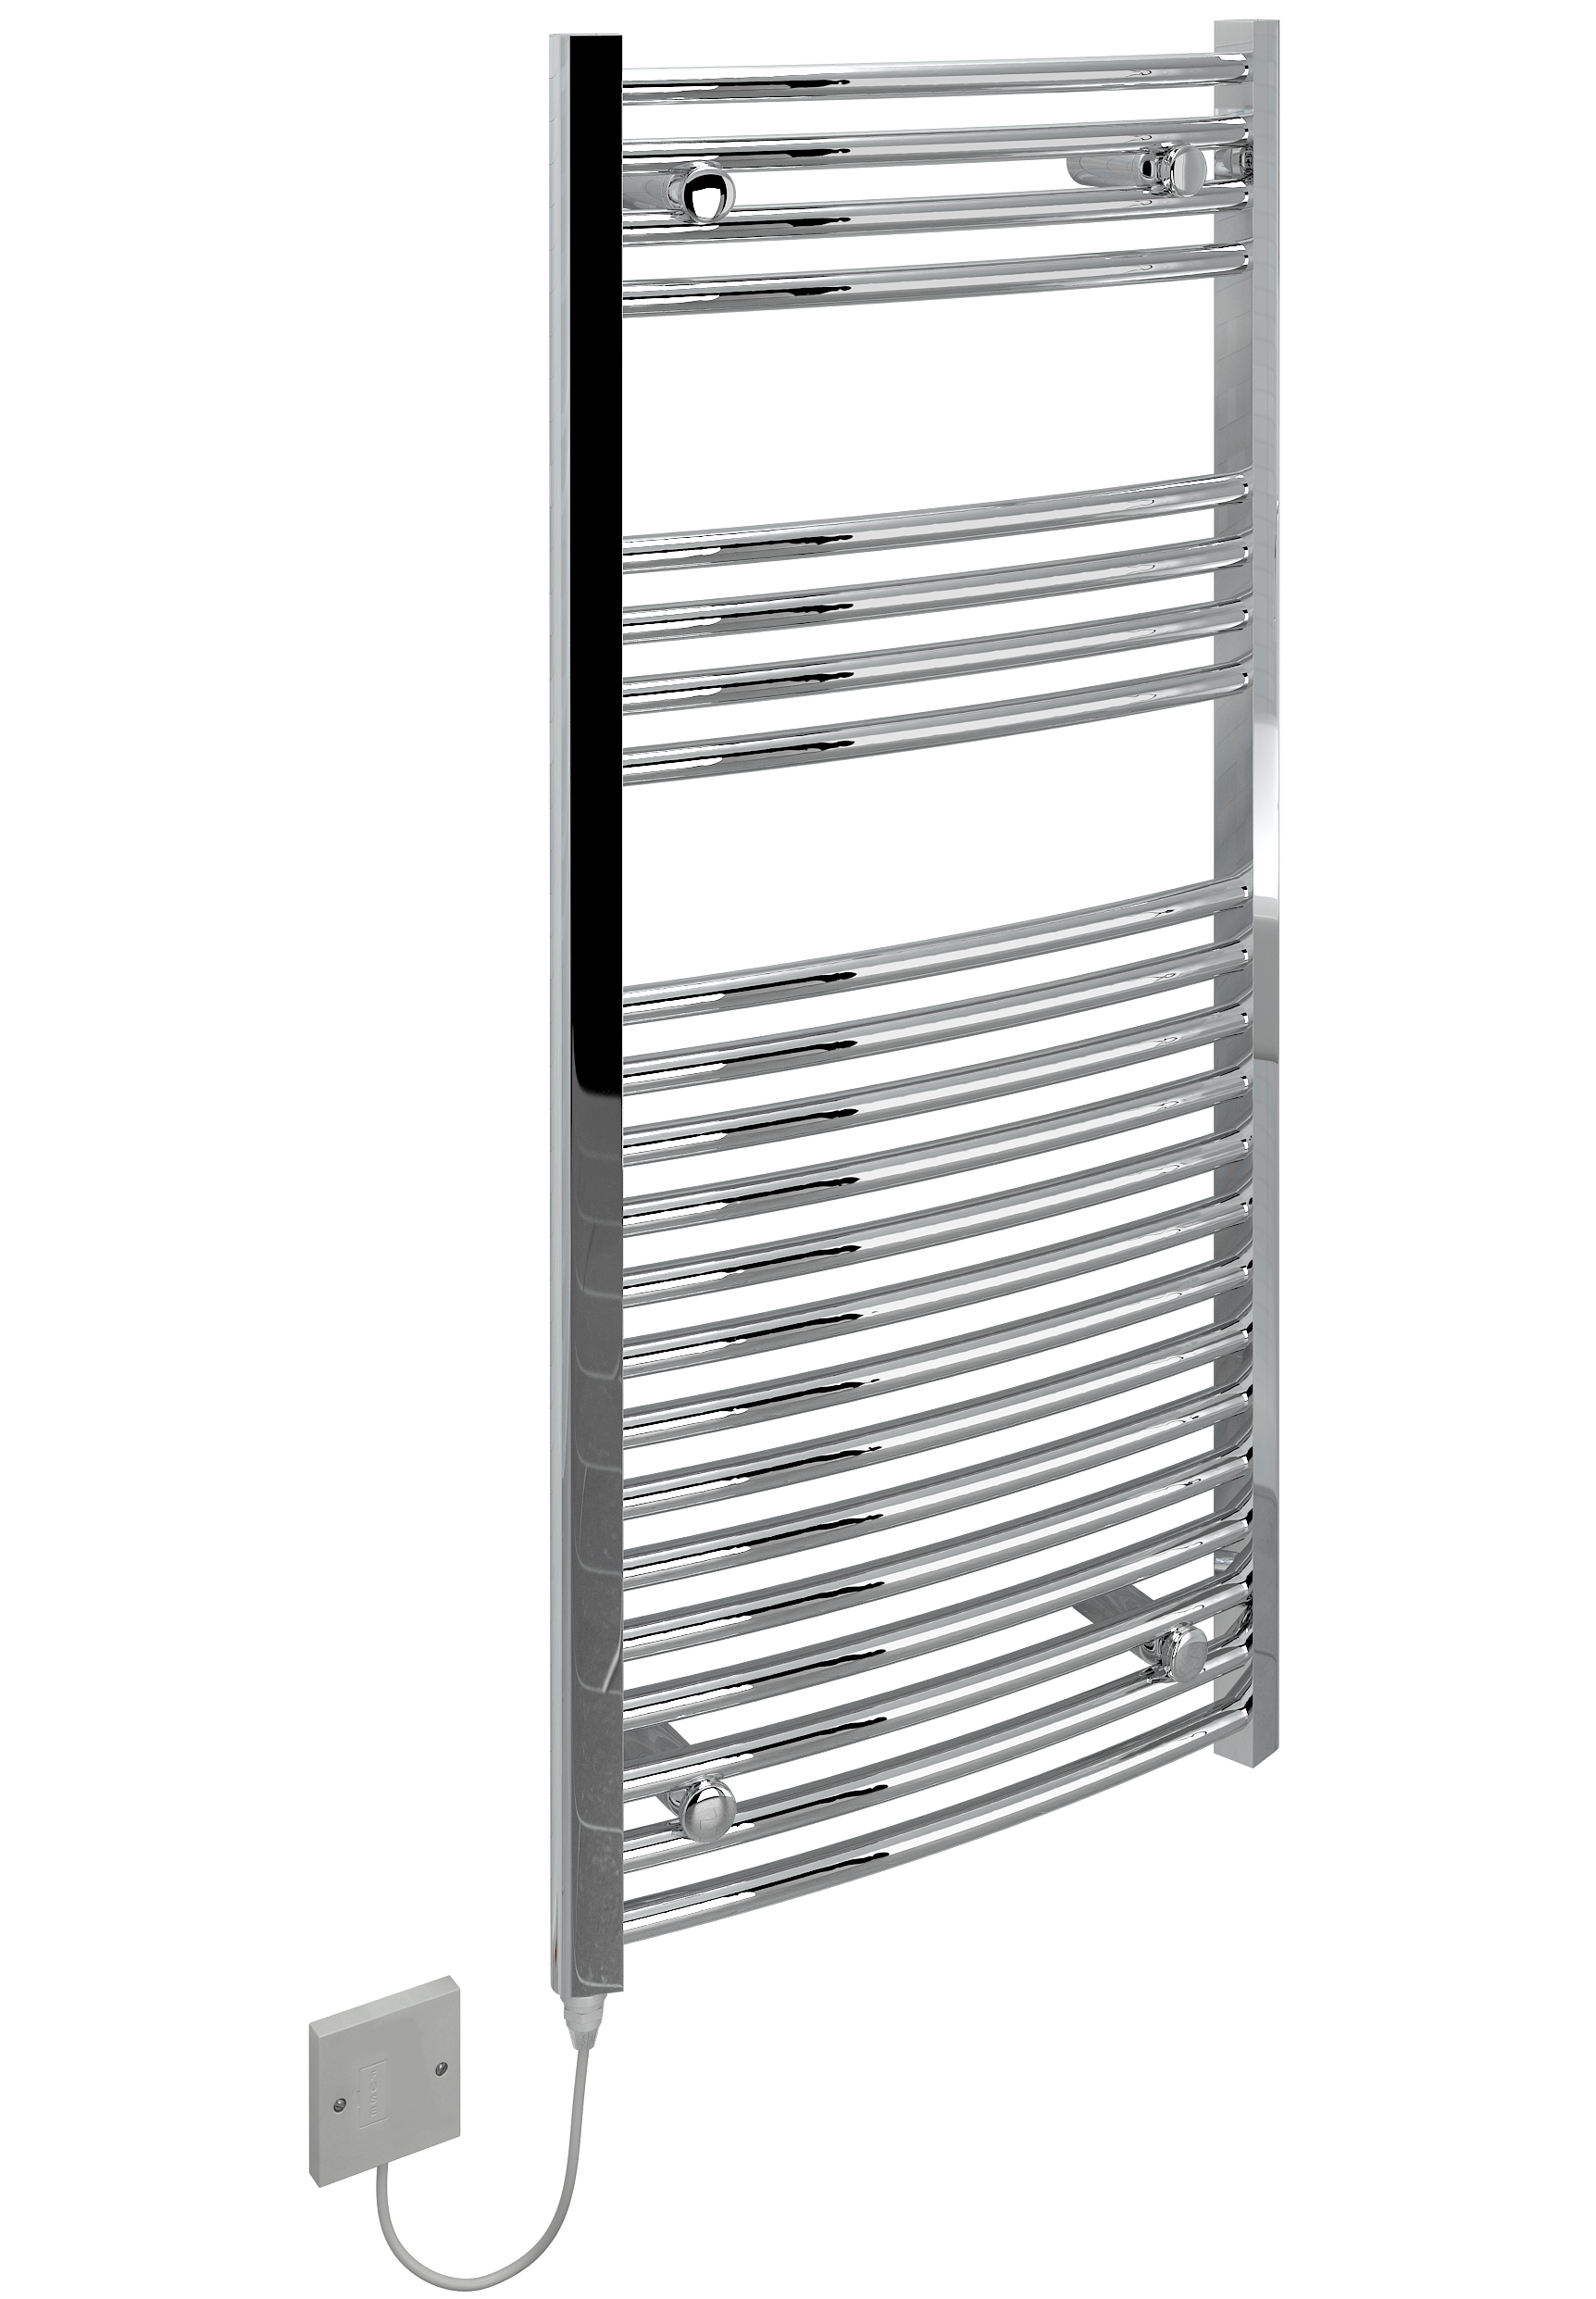 Kudox Electric Towel Rail Curved Chrome 250w 500 X Mm